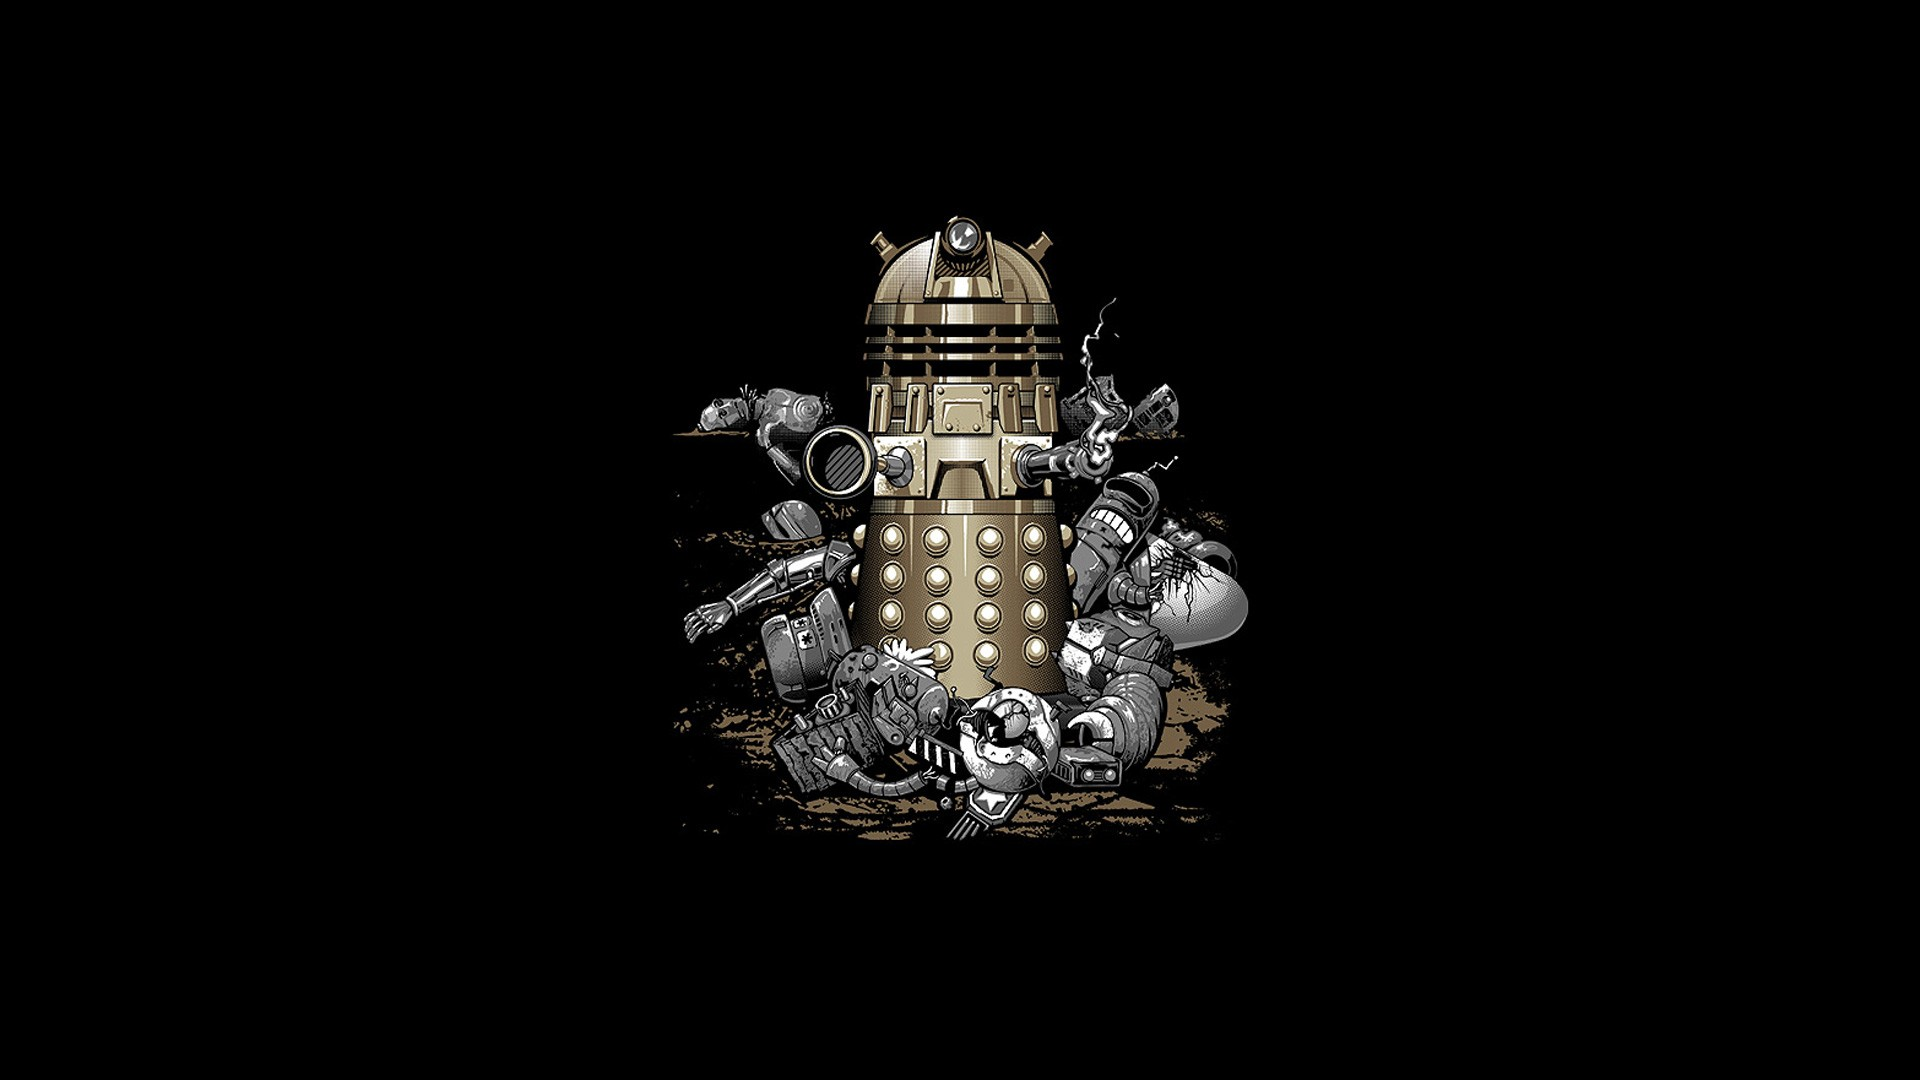 Free Download Dalek Doctor Wallpaper 1920x1080 Dalek Doctor Who